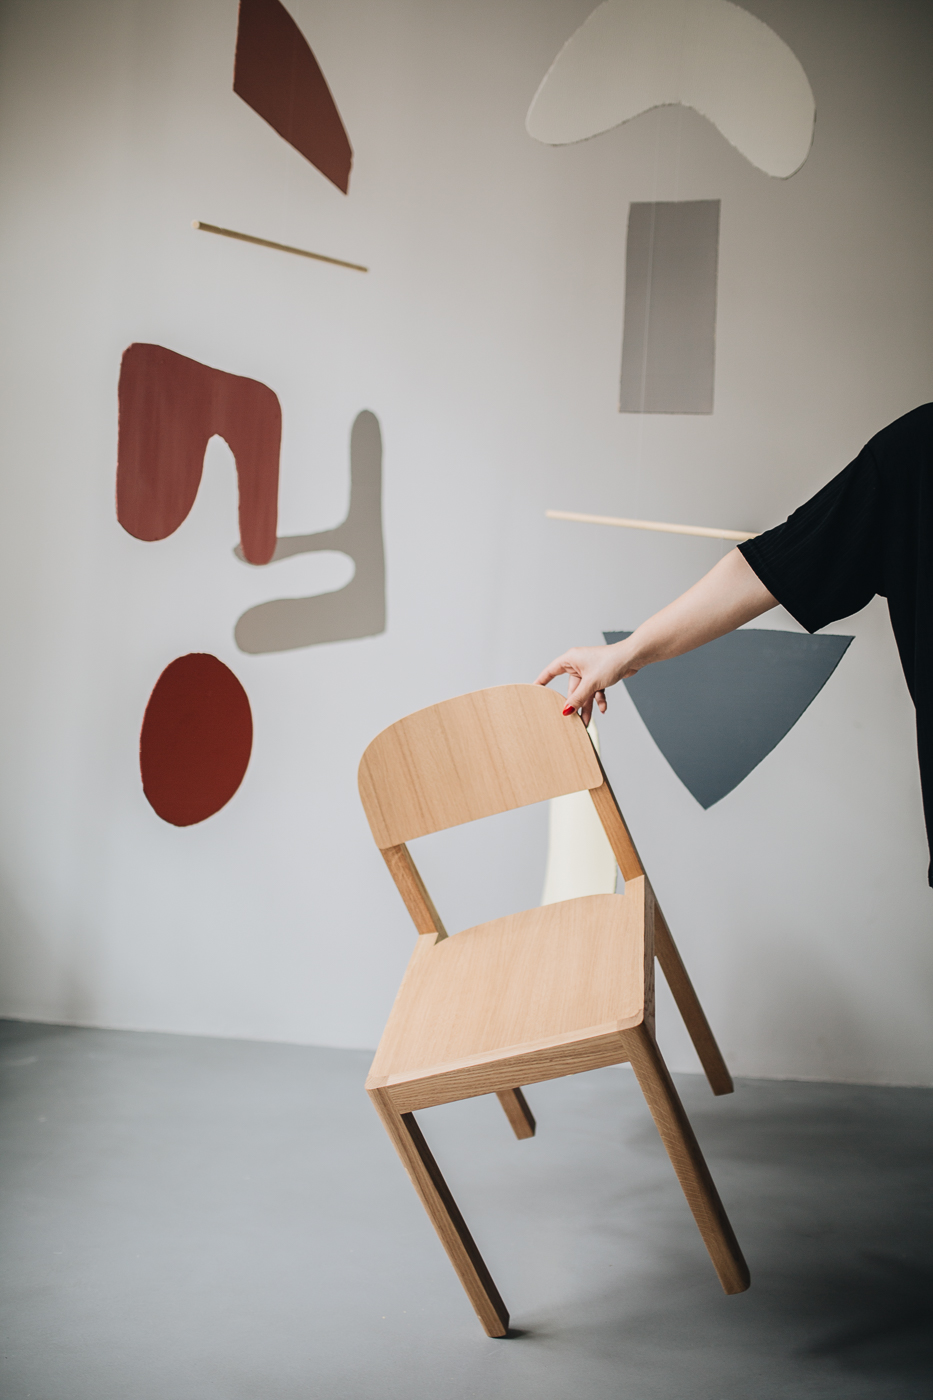 Setz Dich! - Workshop Chair von Muuto